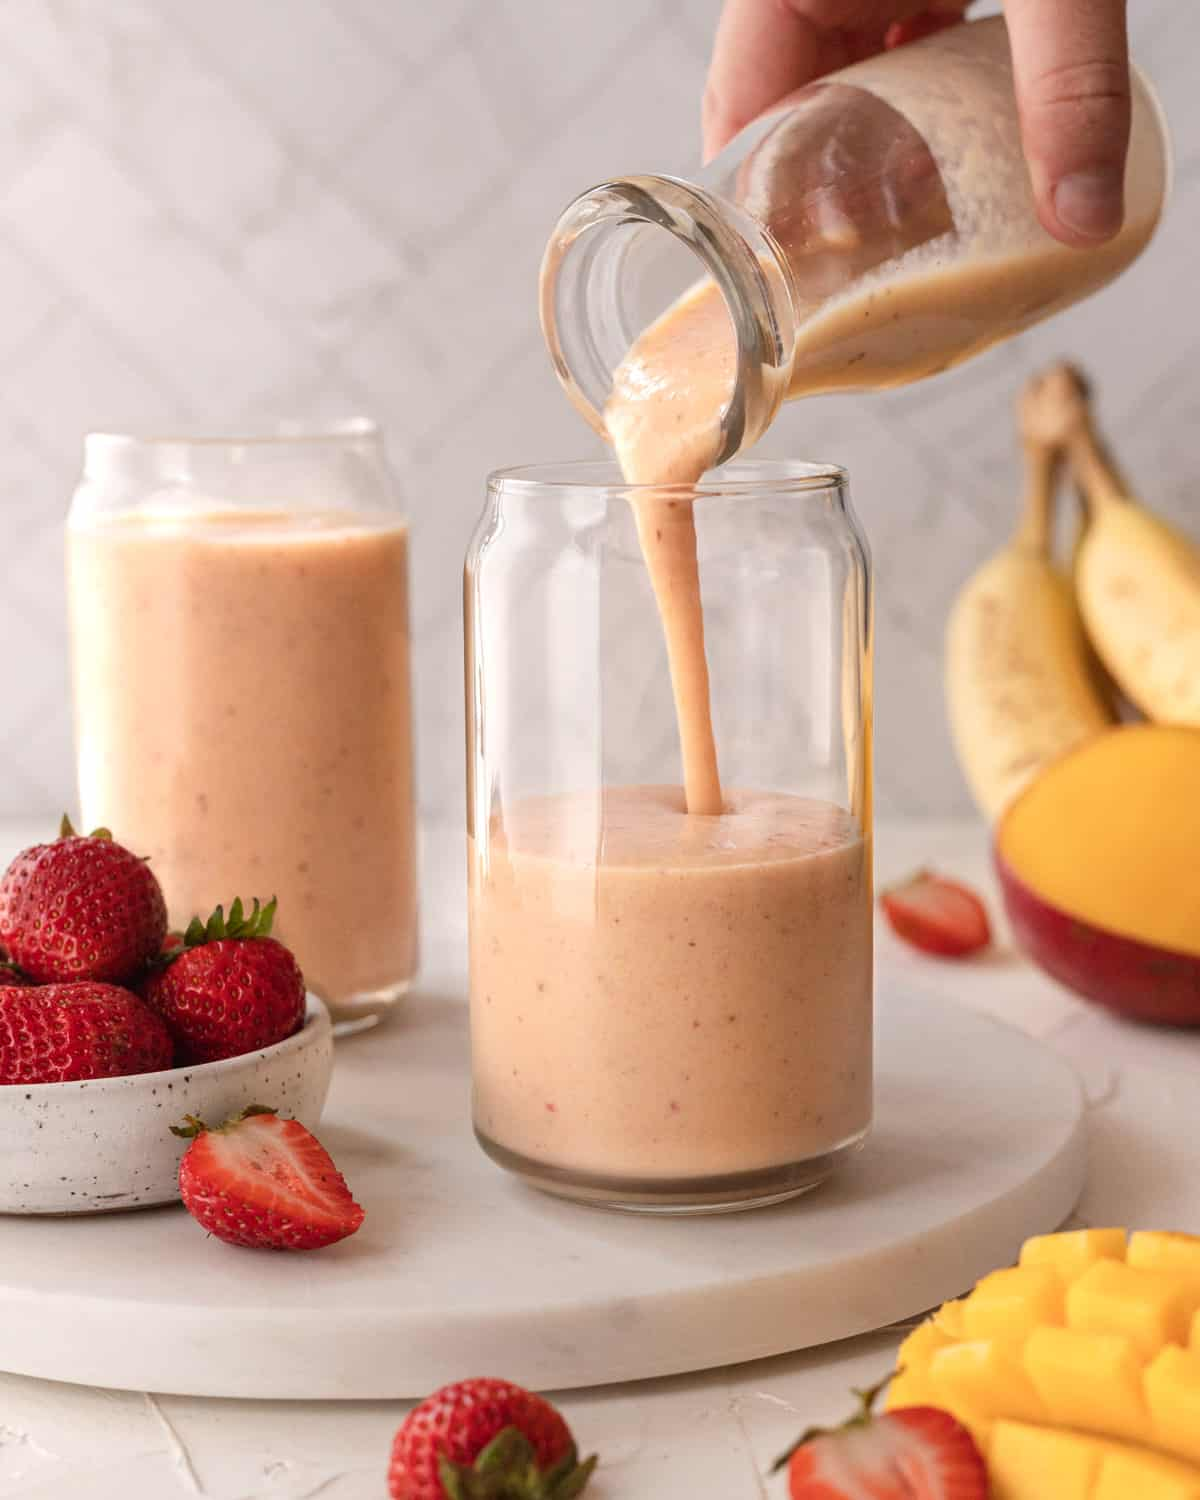 smoothie being poured into a clear glass on a white marble platter next to a bowl of strawberries.